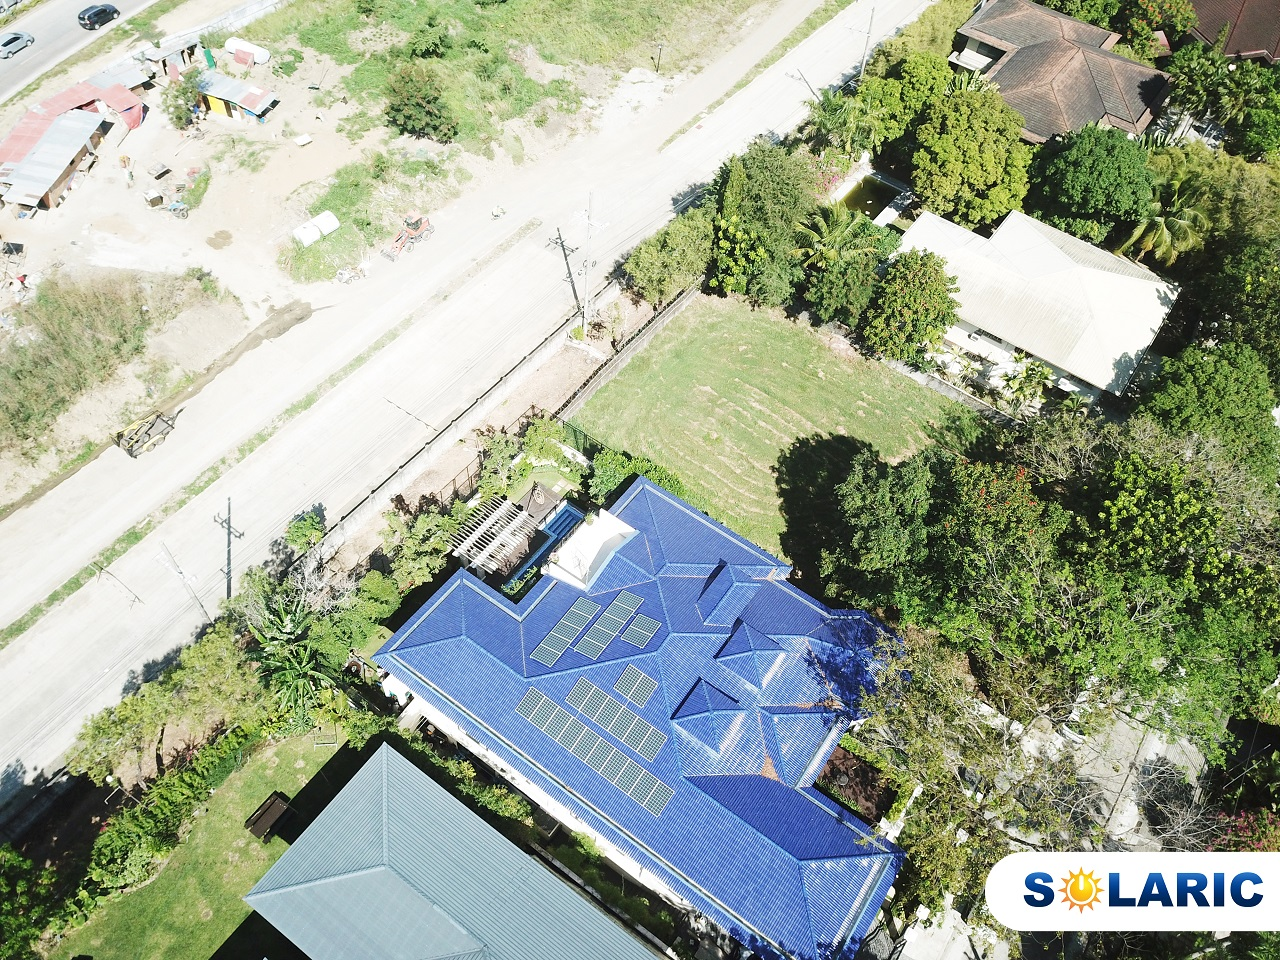 Top shot of a house in the Philippines with solar